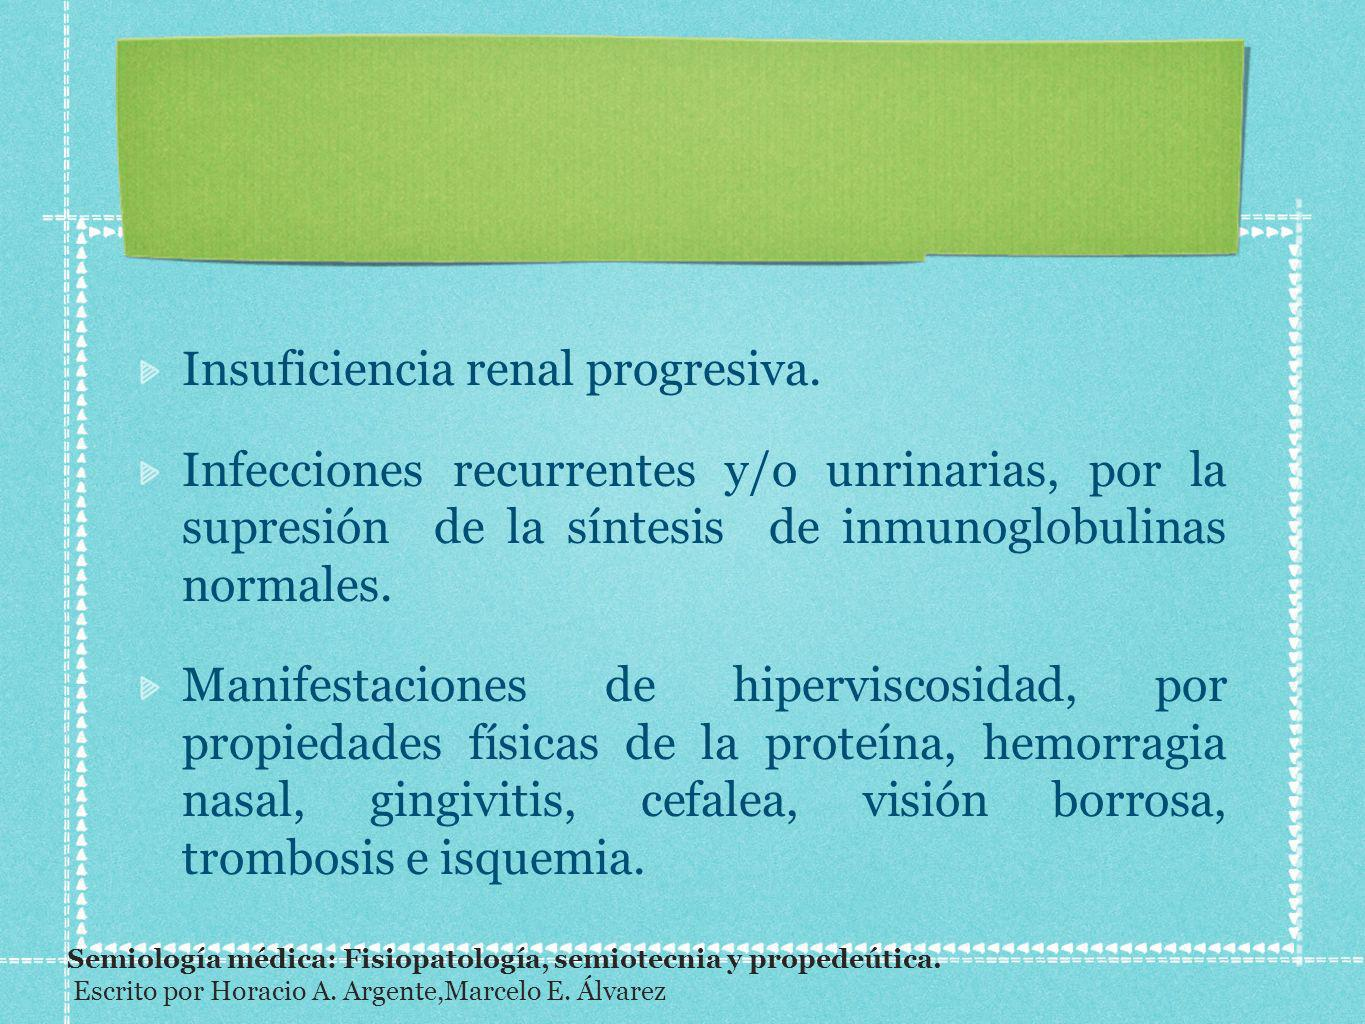 Insuficiencia renal progresiva.